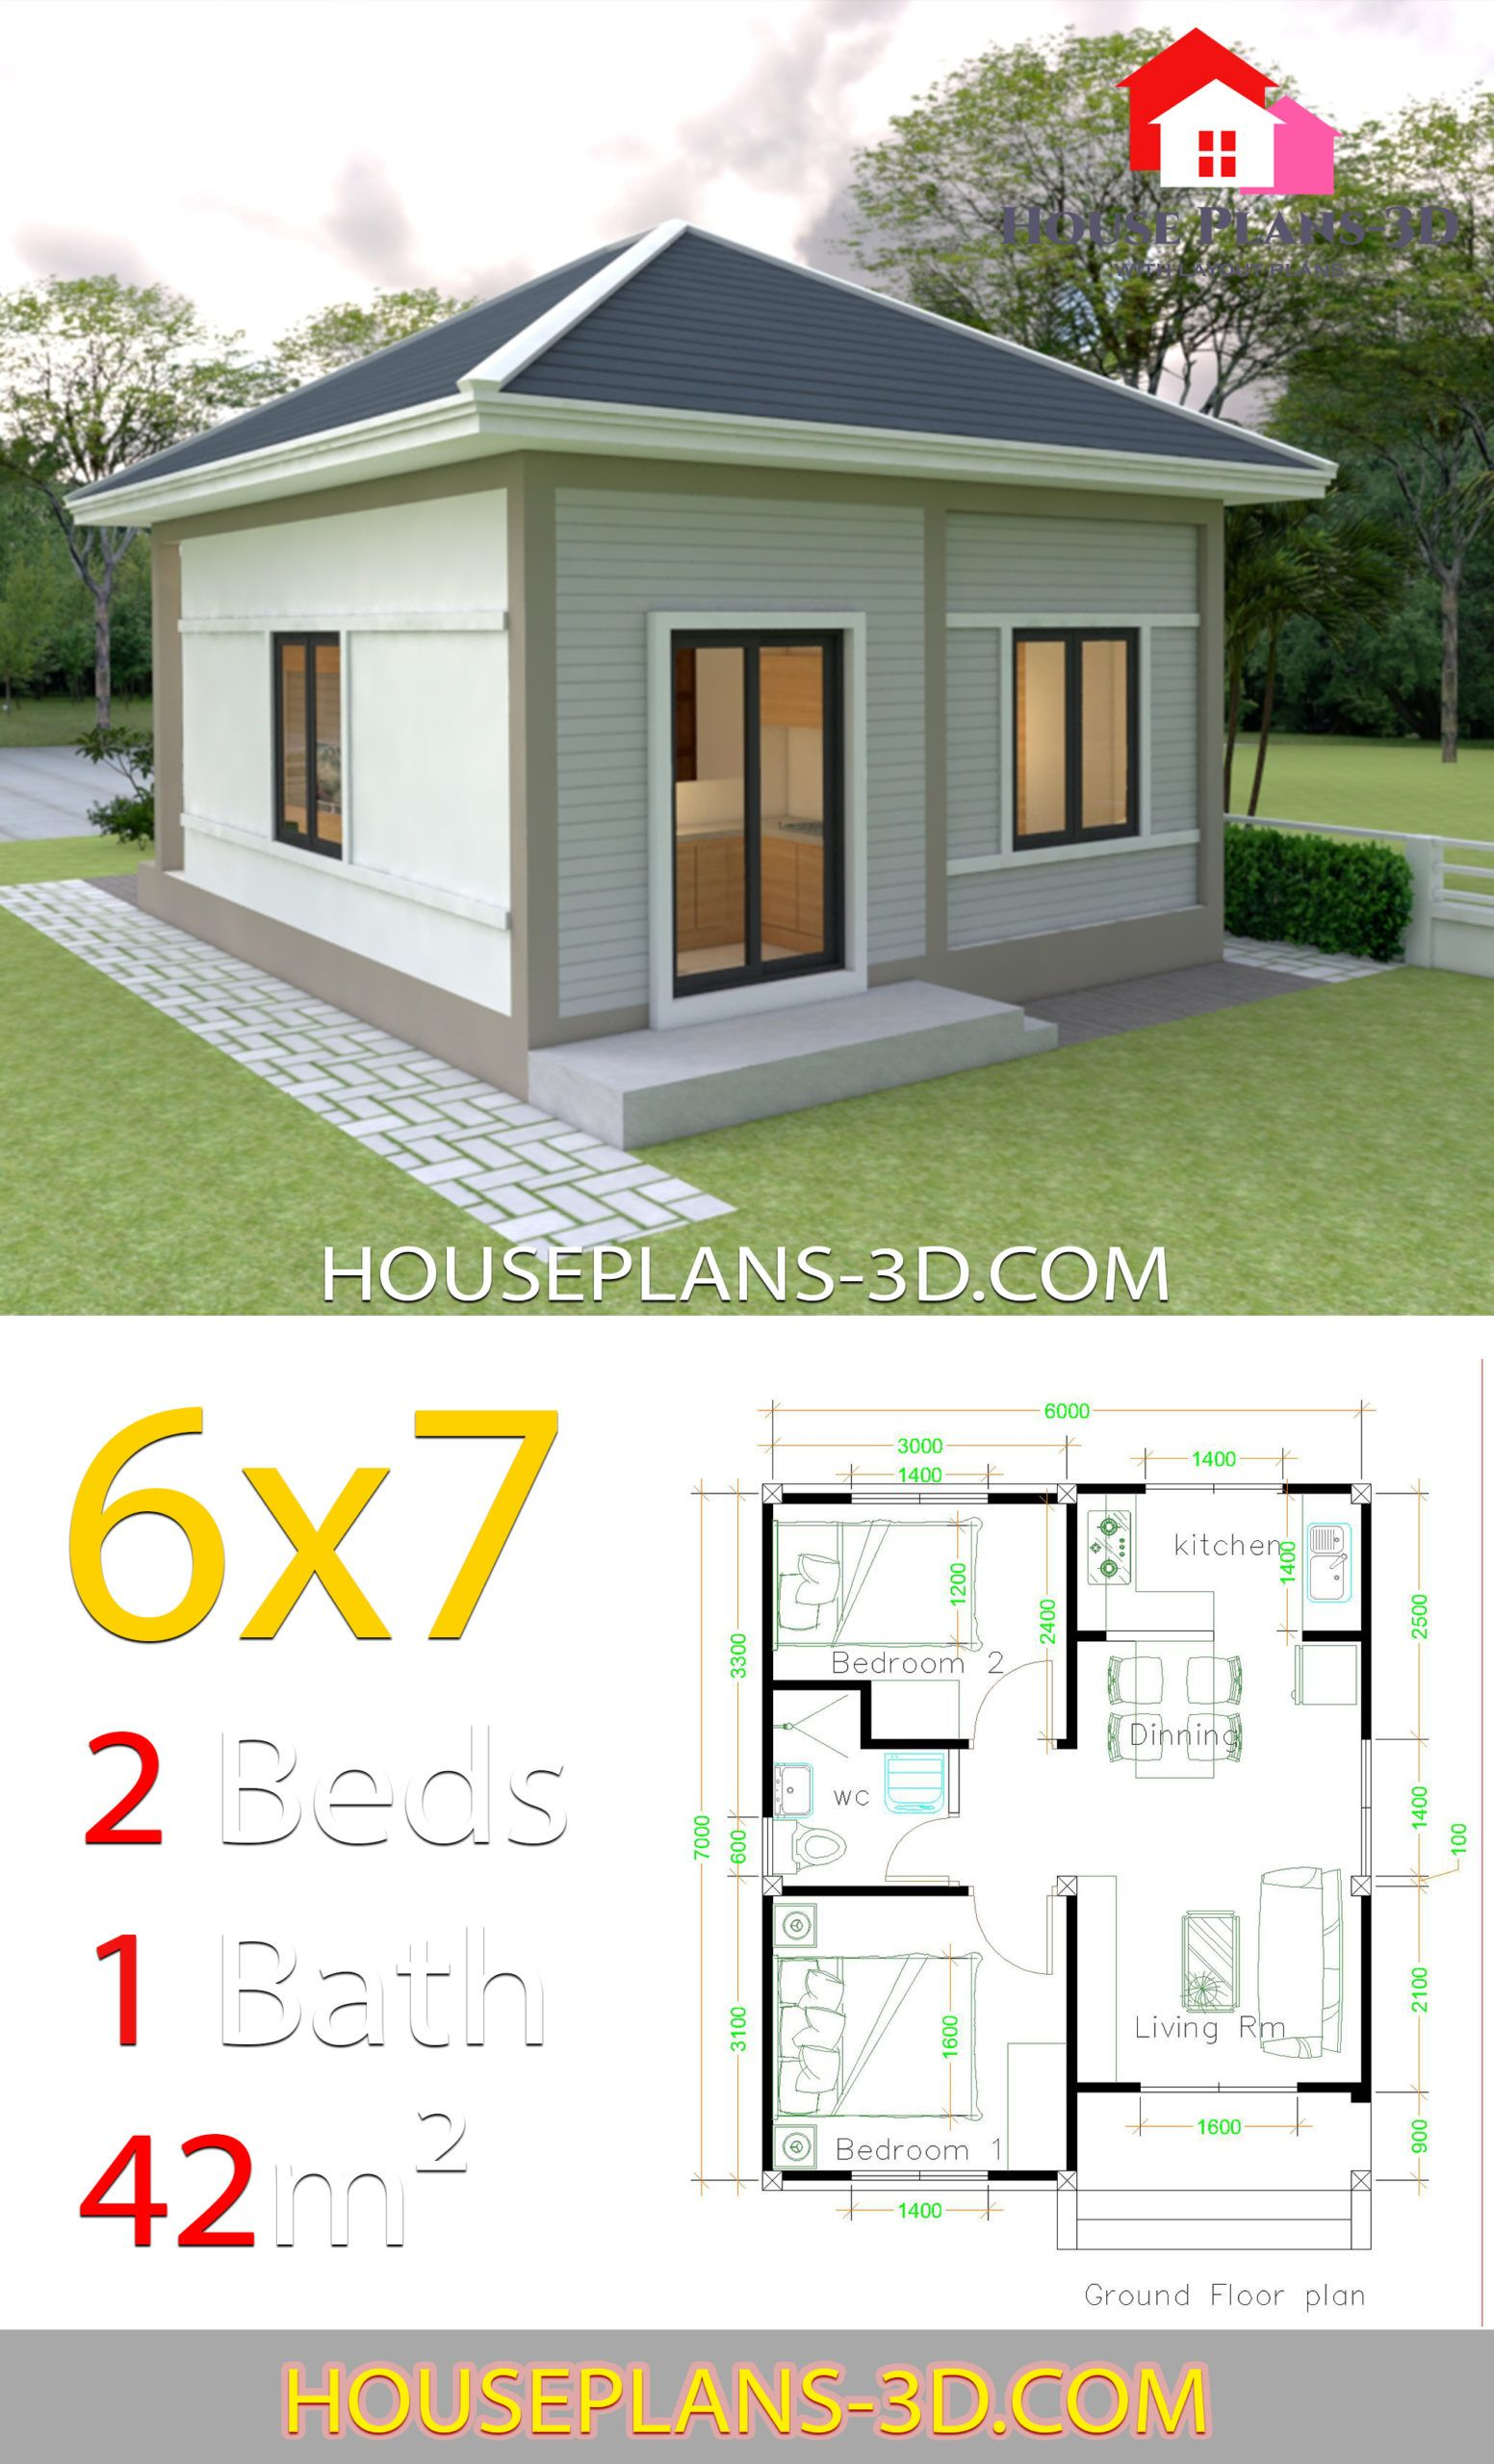 Simple House Plans 6x7 With 2 Bedrooms Hip Roof House Plans 3d In 2020 House Plans Simple House Simple House Design